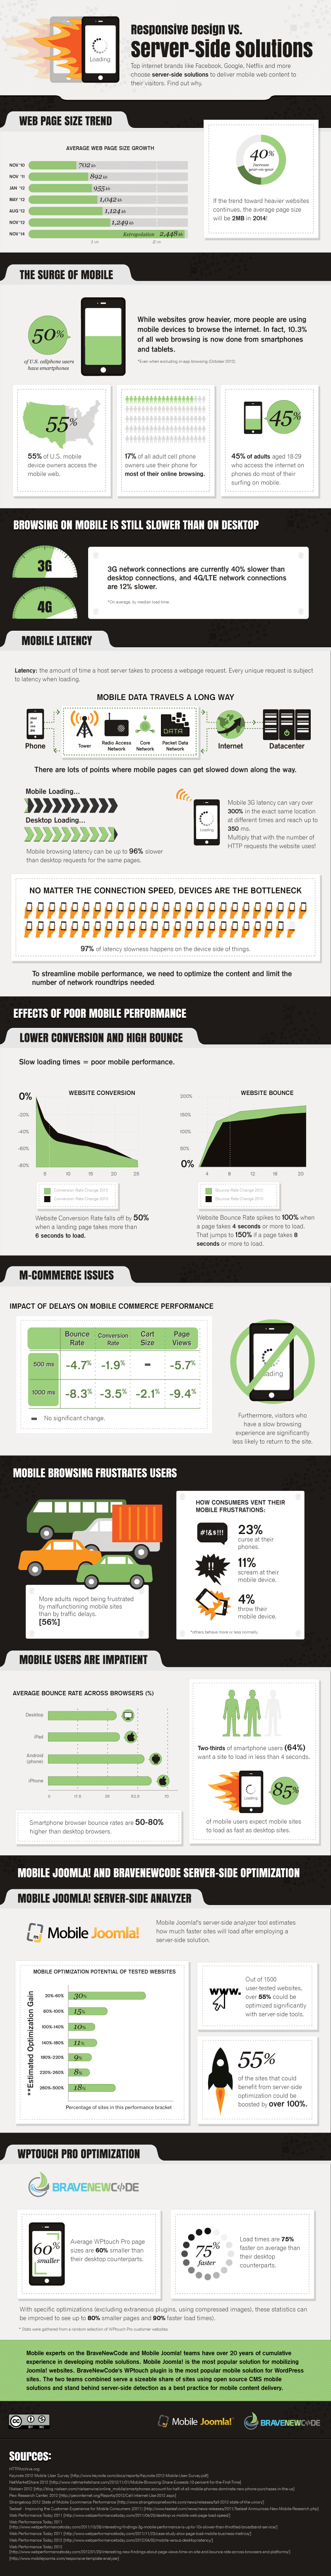 Infographics: Responsive Design vs. Server-Side Solutions